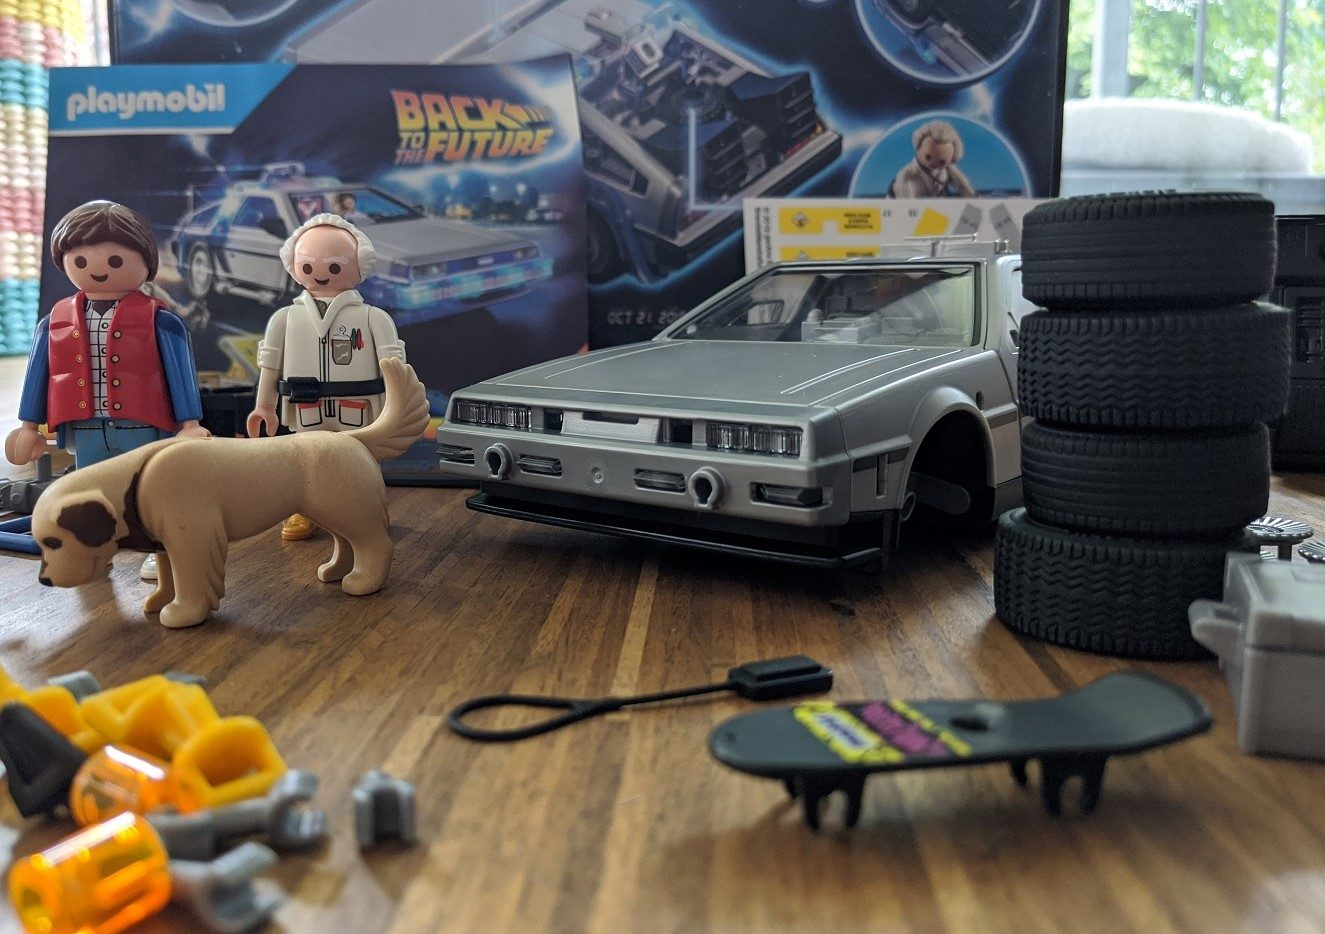 playmobil DeLorean DMC 12